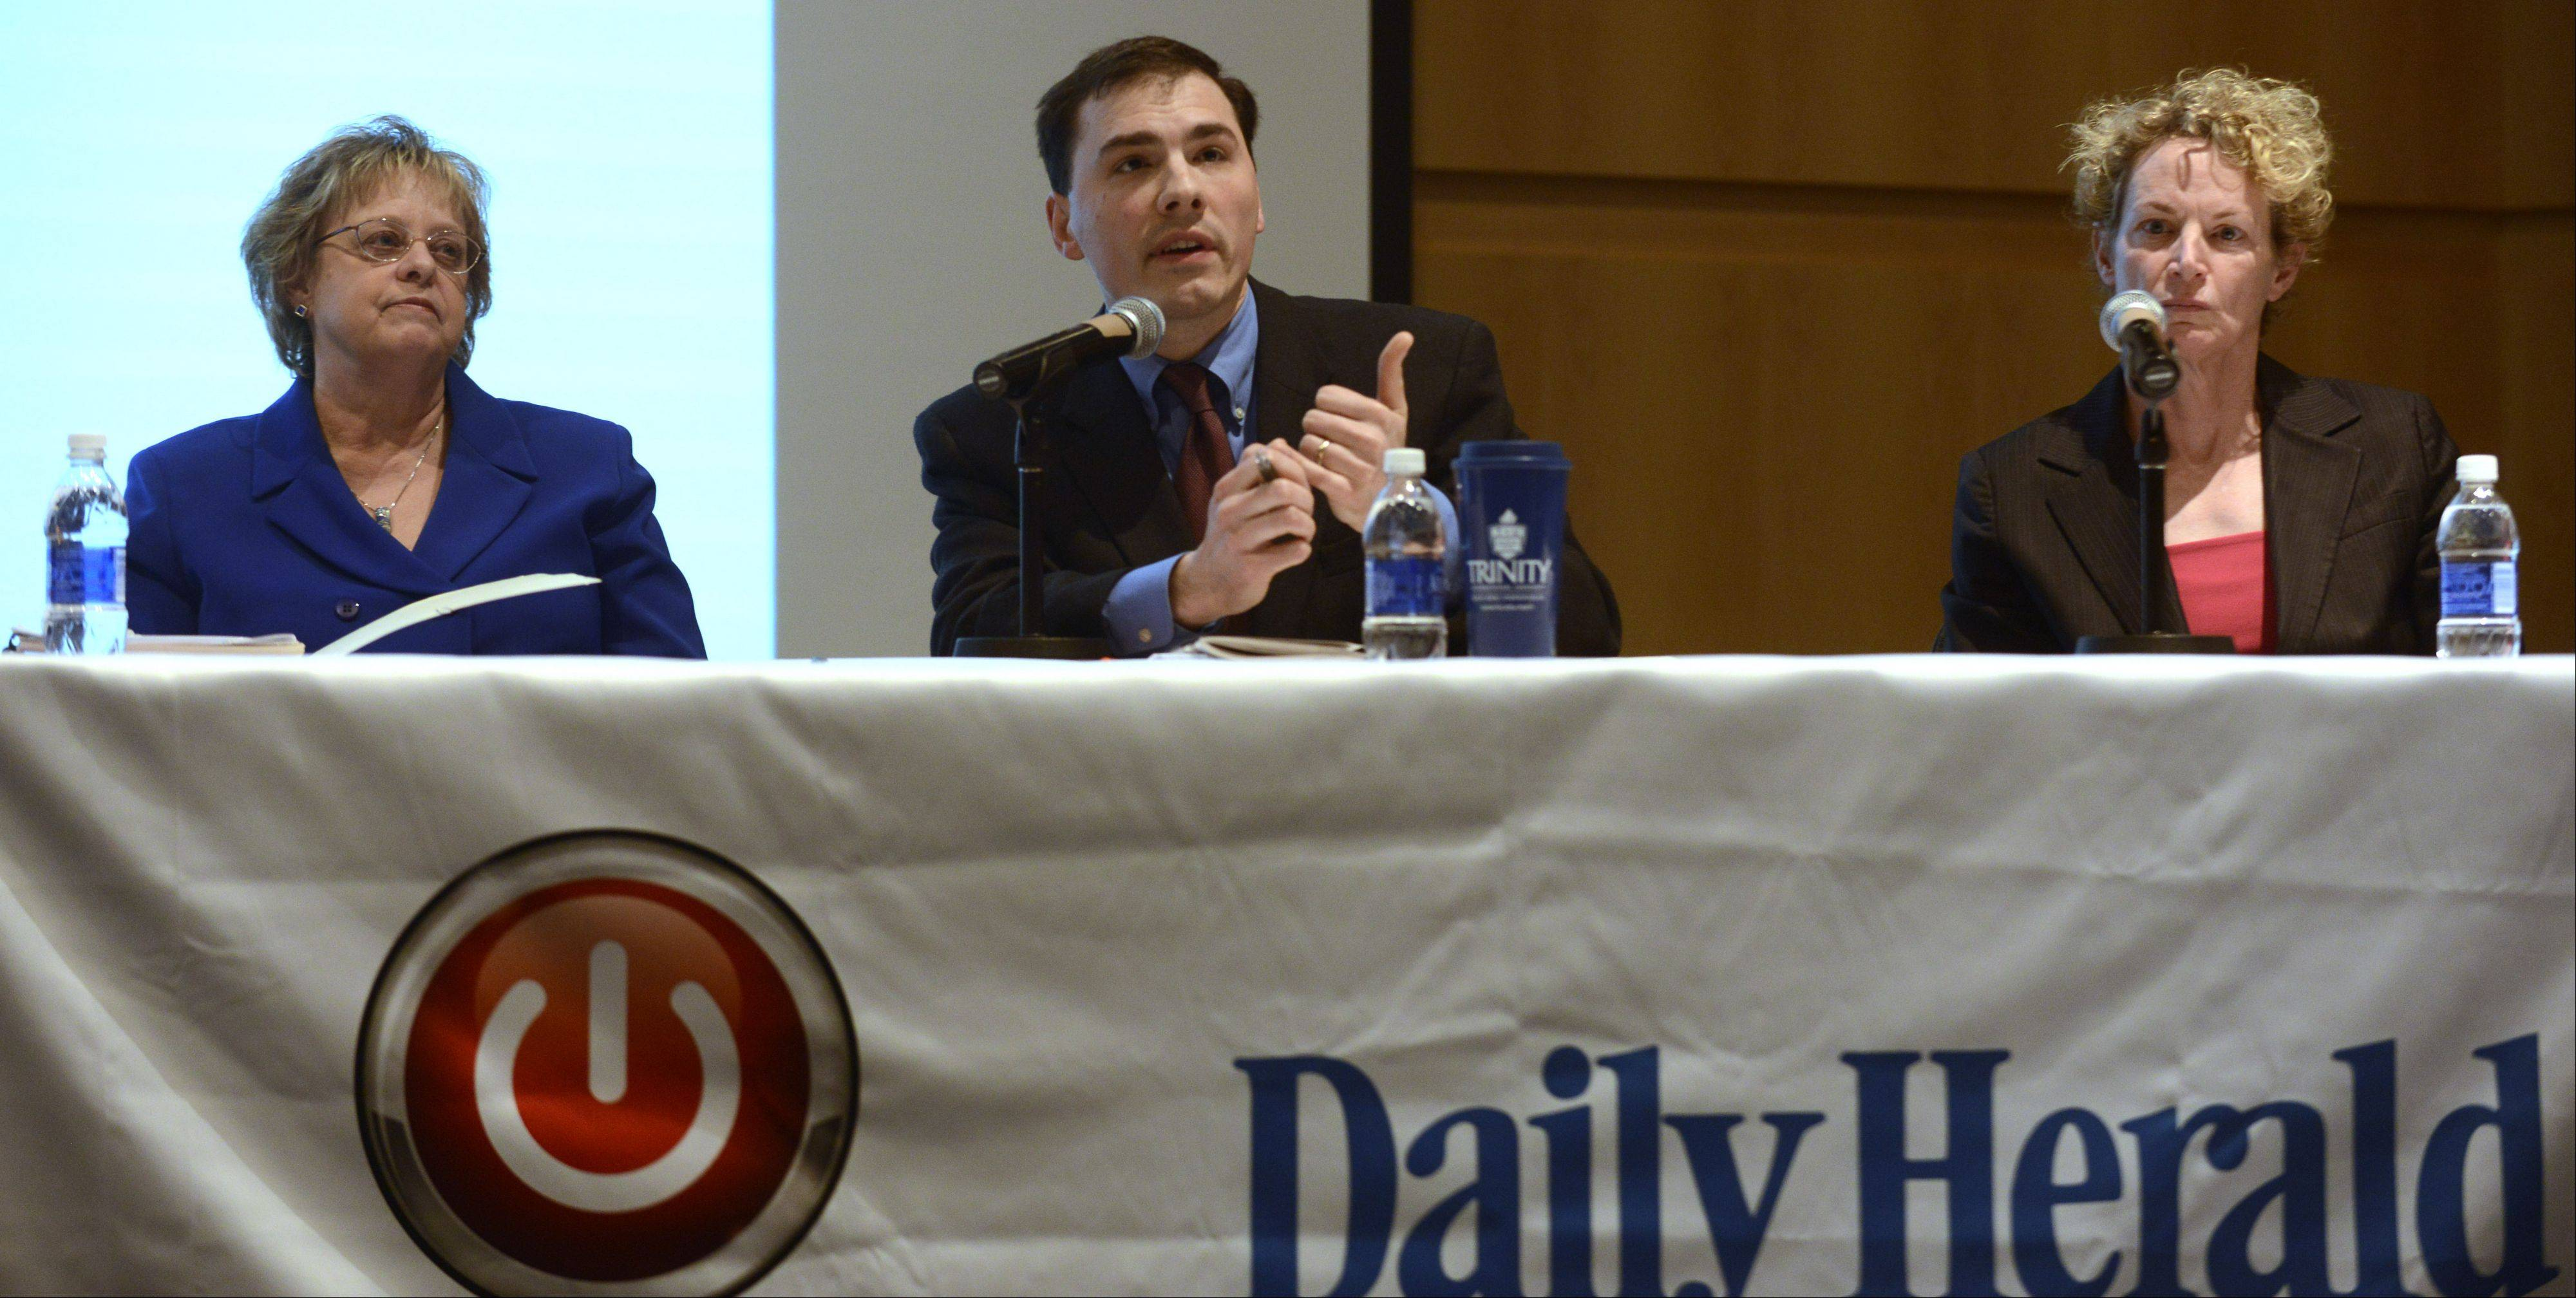 JOE LEWNARD/jlewnard@dailyherald.comLeft to right, Cinda Klickna, Illinois Education Association president, and state representatives Tom Morrison and Elaine Nekritz participate in a pension reform forum sponsored by the Daily Herald and Reboot Illinois, held at Harper College in Palatine Wednesday.